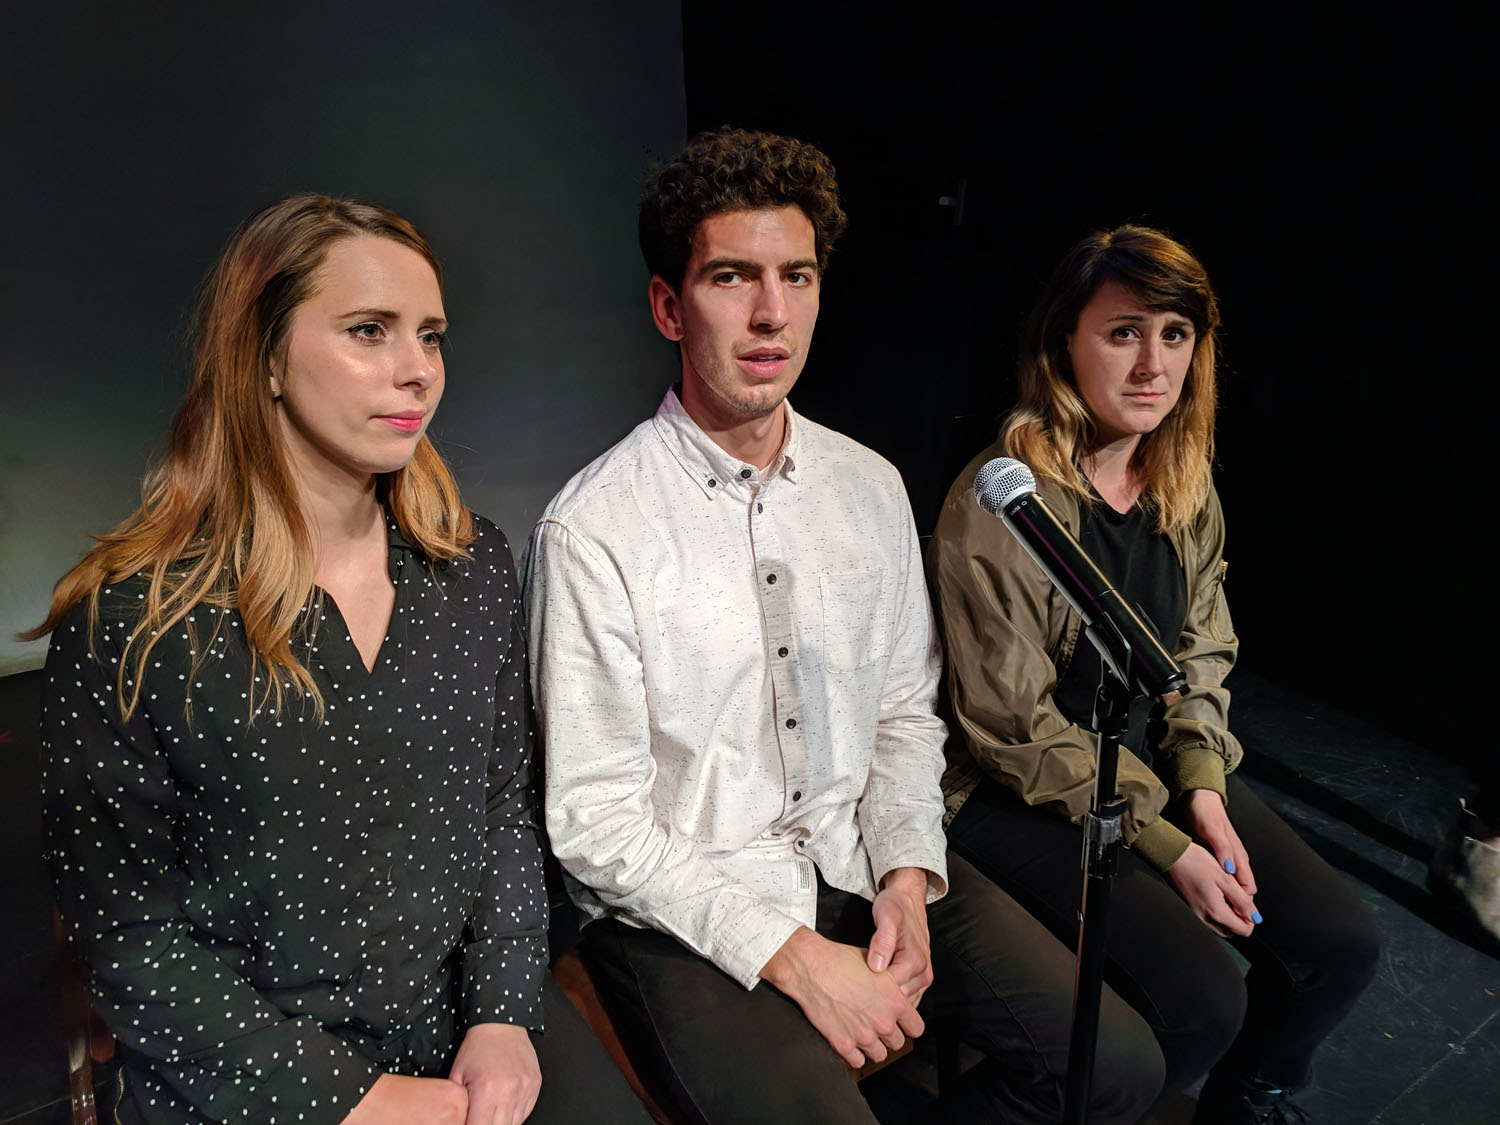 Alonya Eisenberg, Andrew Heder and Alisha Ketry at PianoFight for SF Sketchfest